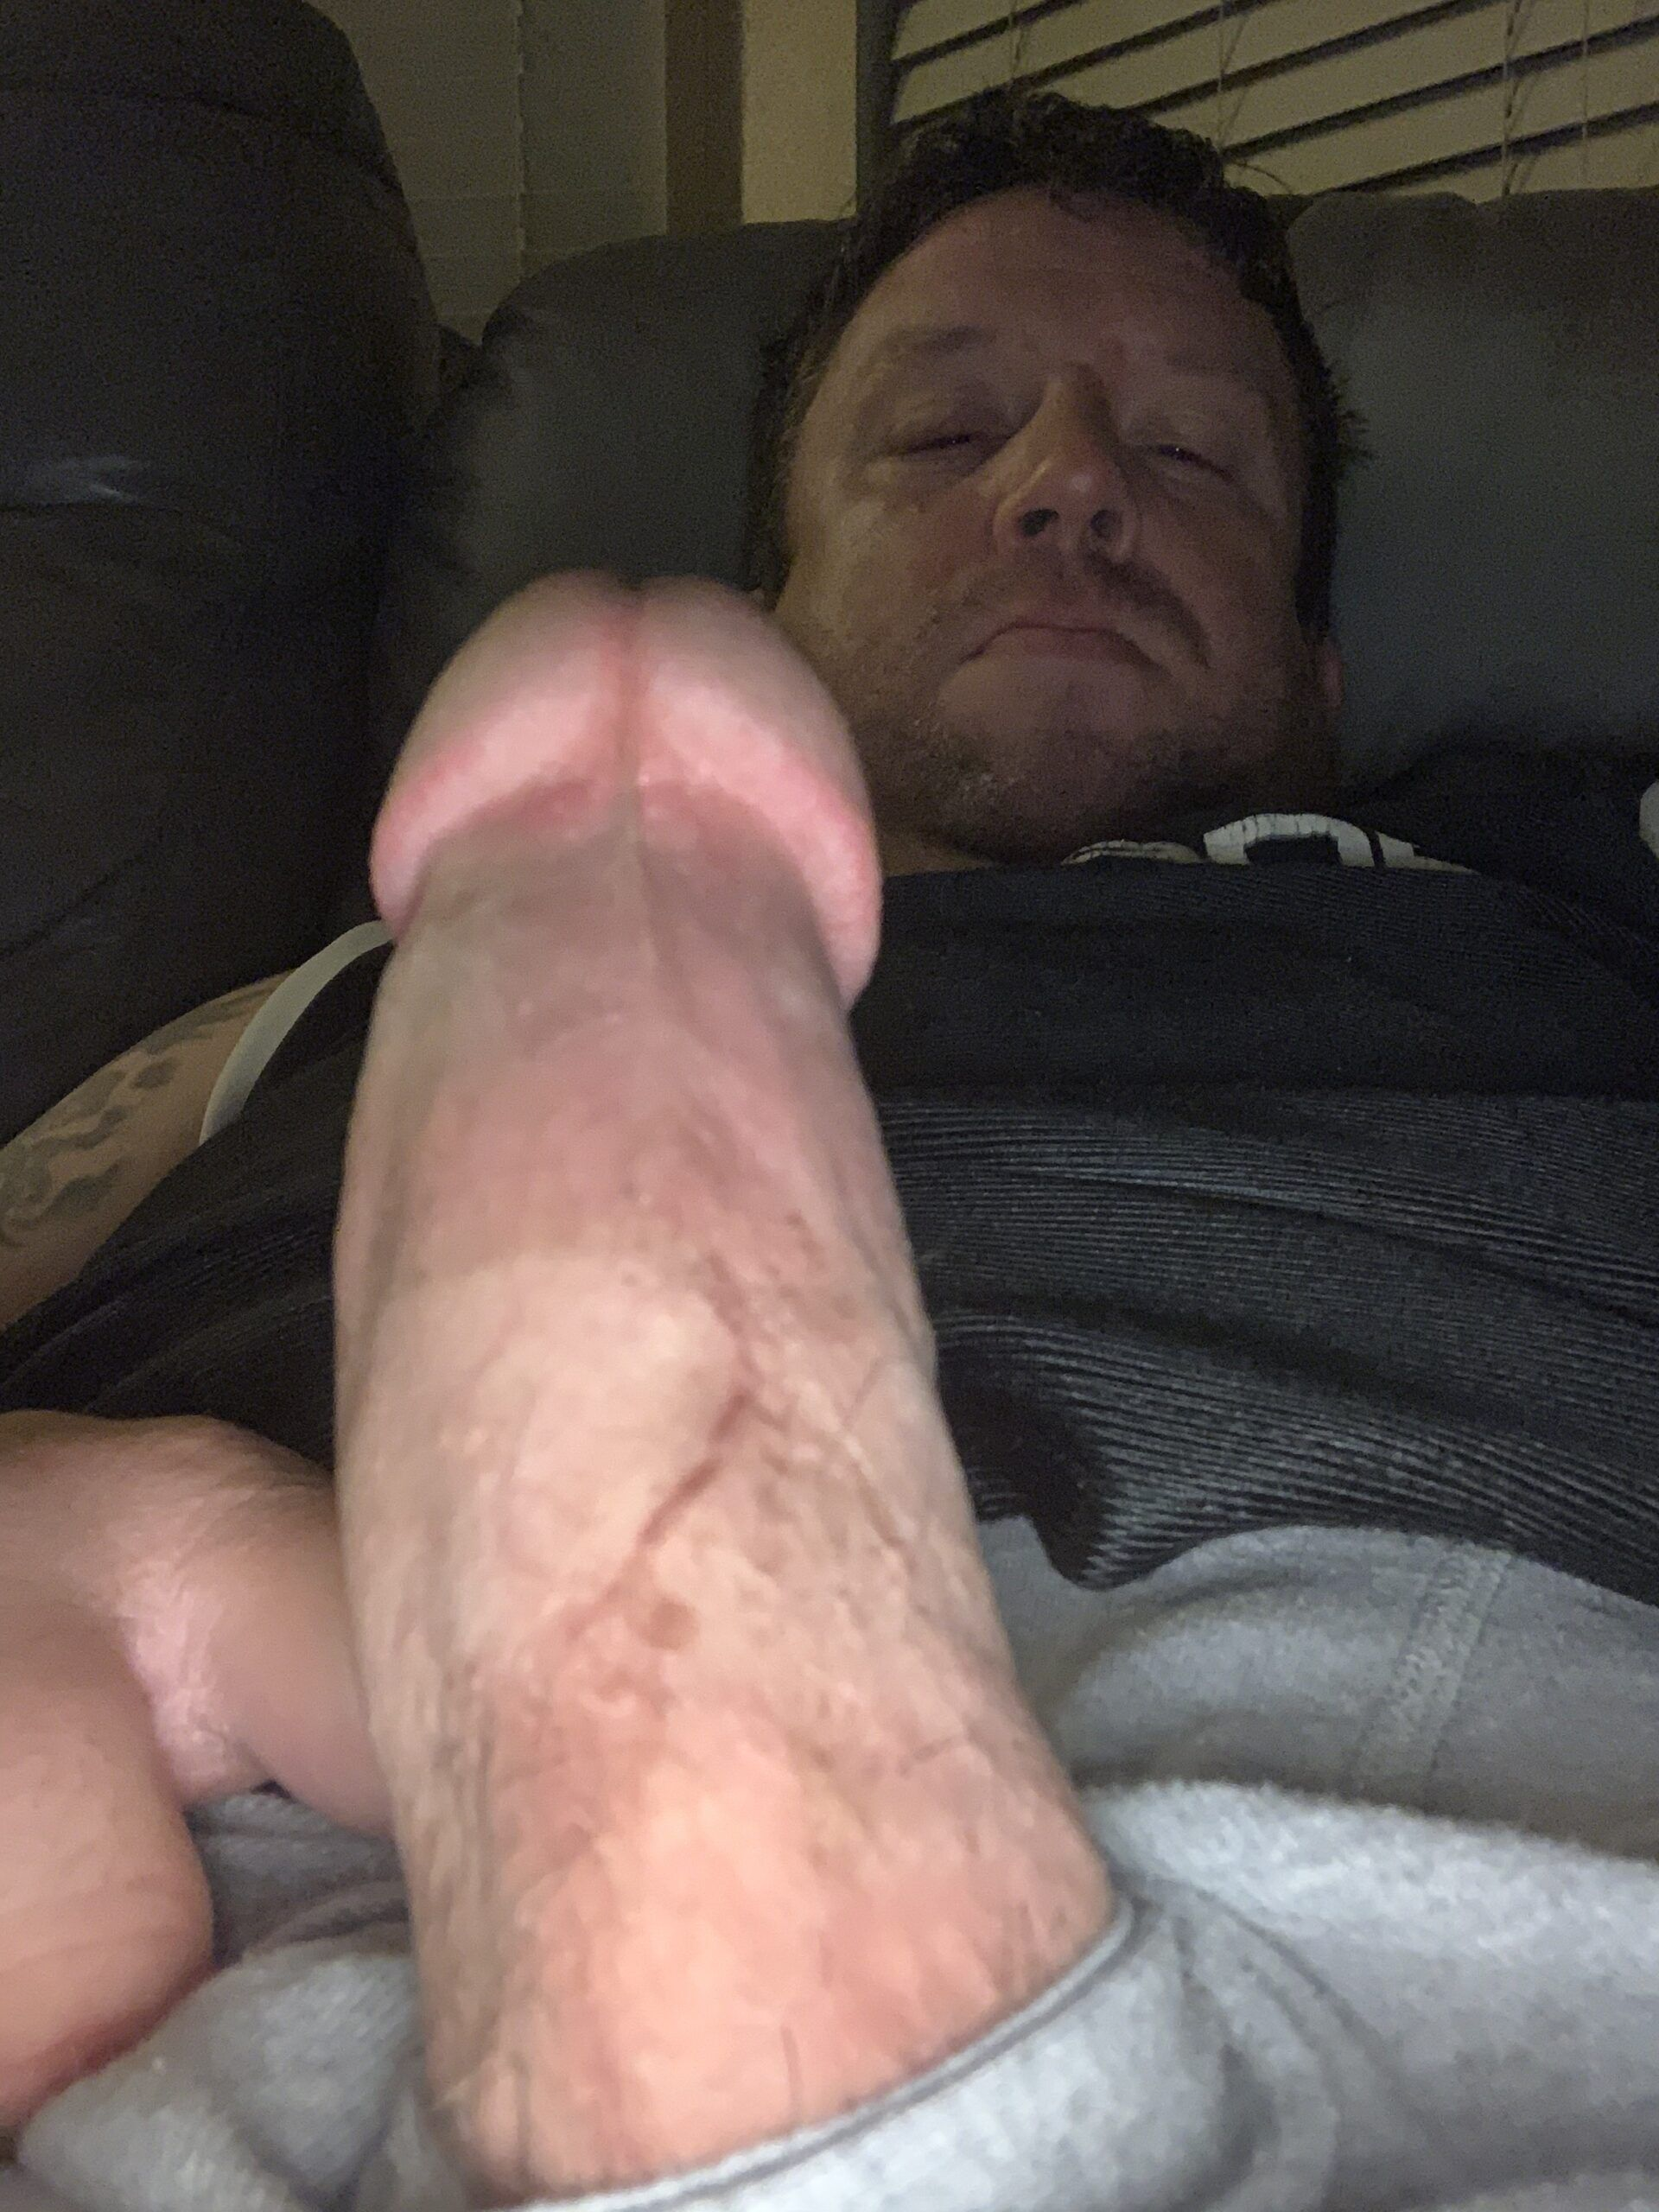 Flashing My hard throbbing cock! real nudity dick flash